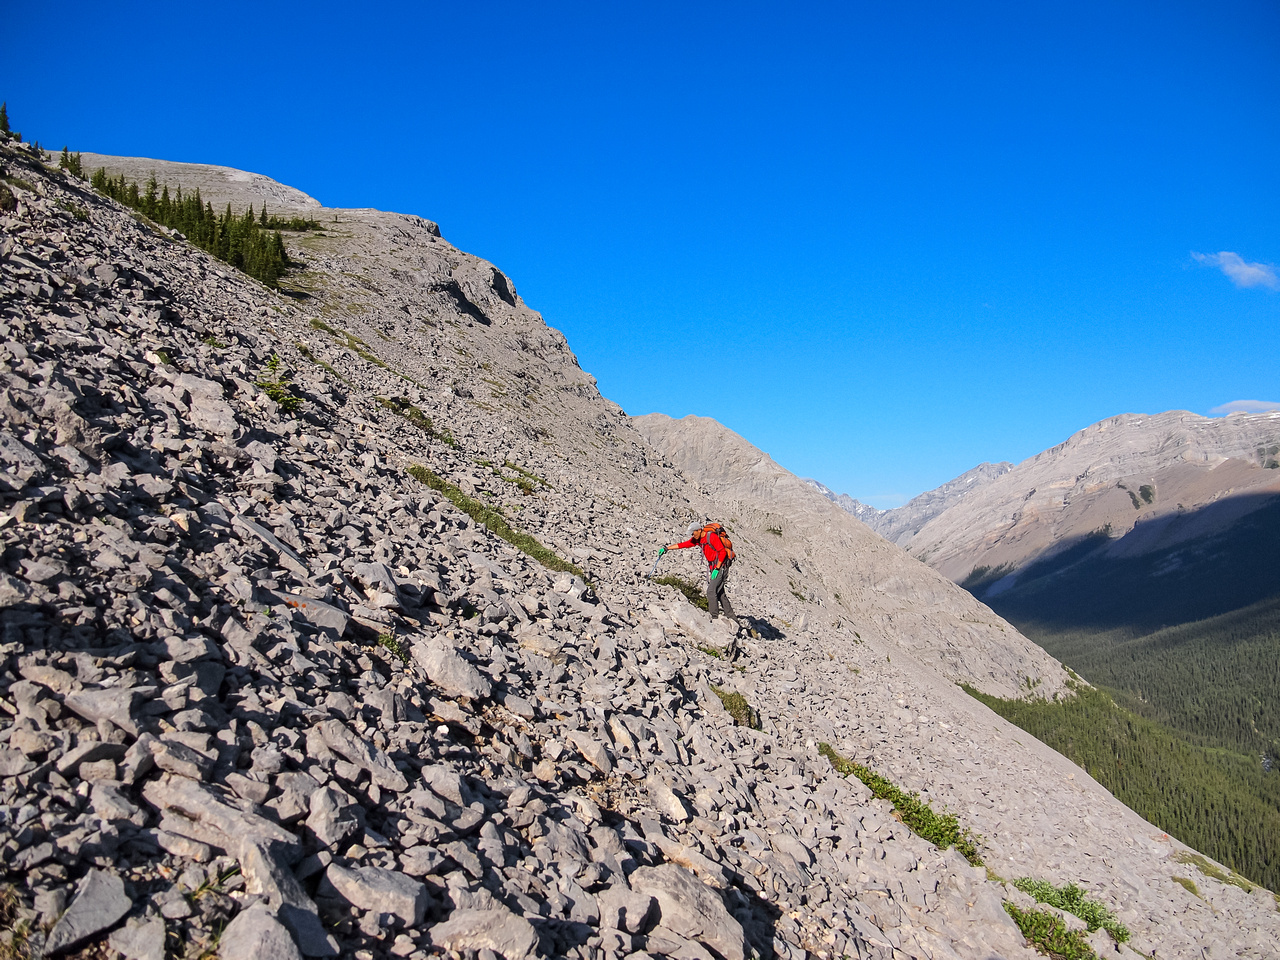 So grunts up the only section of loose scree from tree line to the first shoulder.